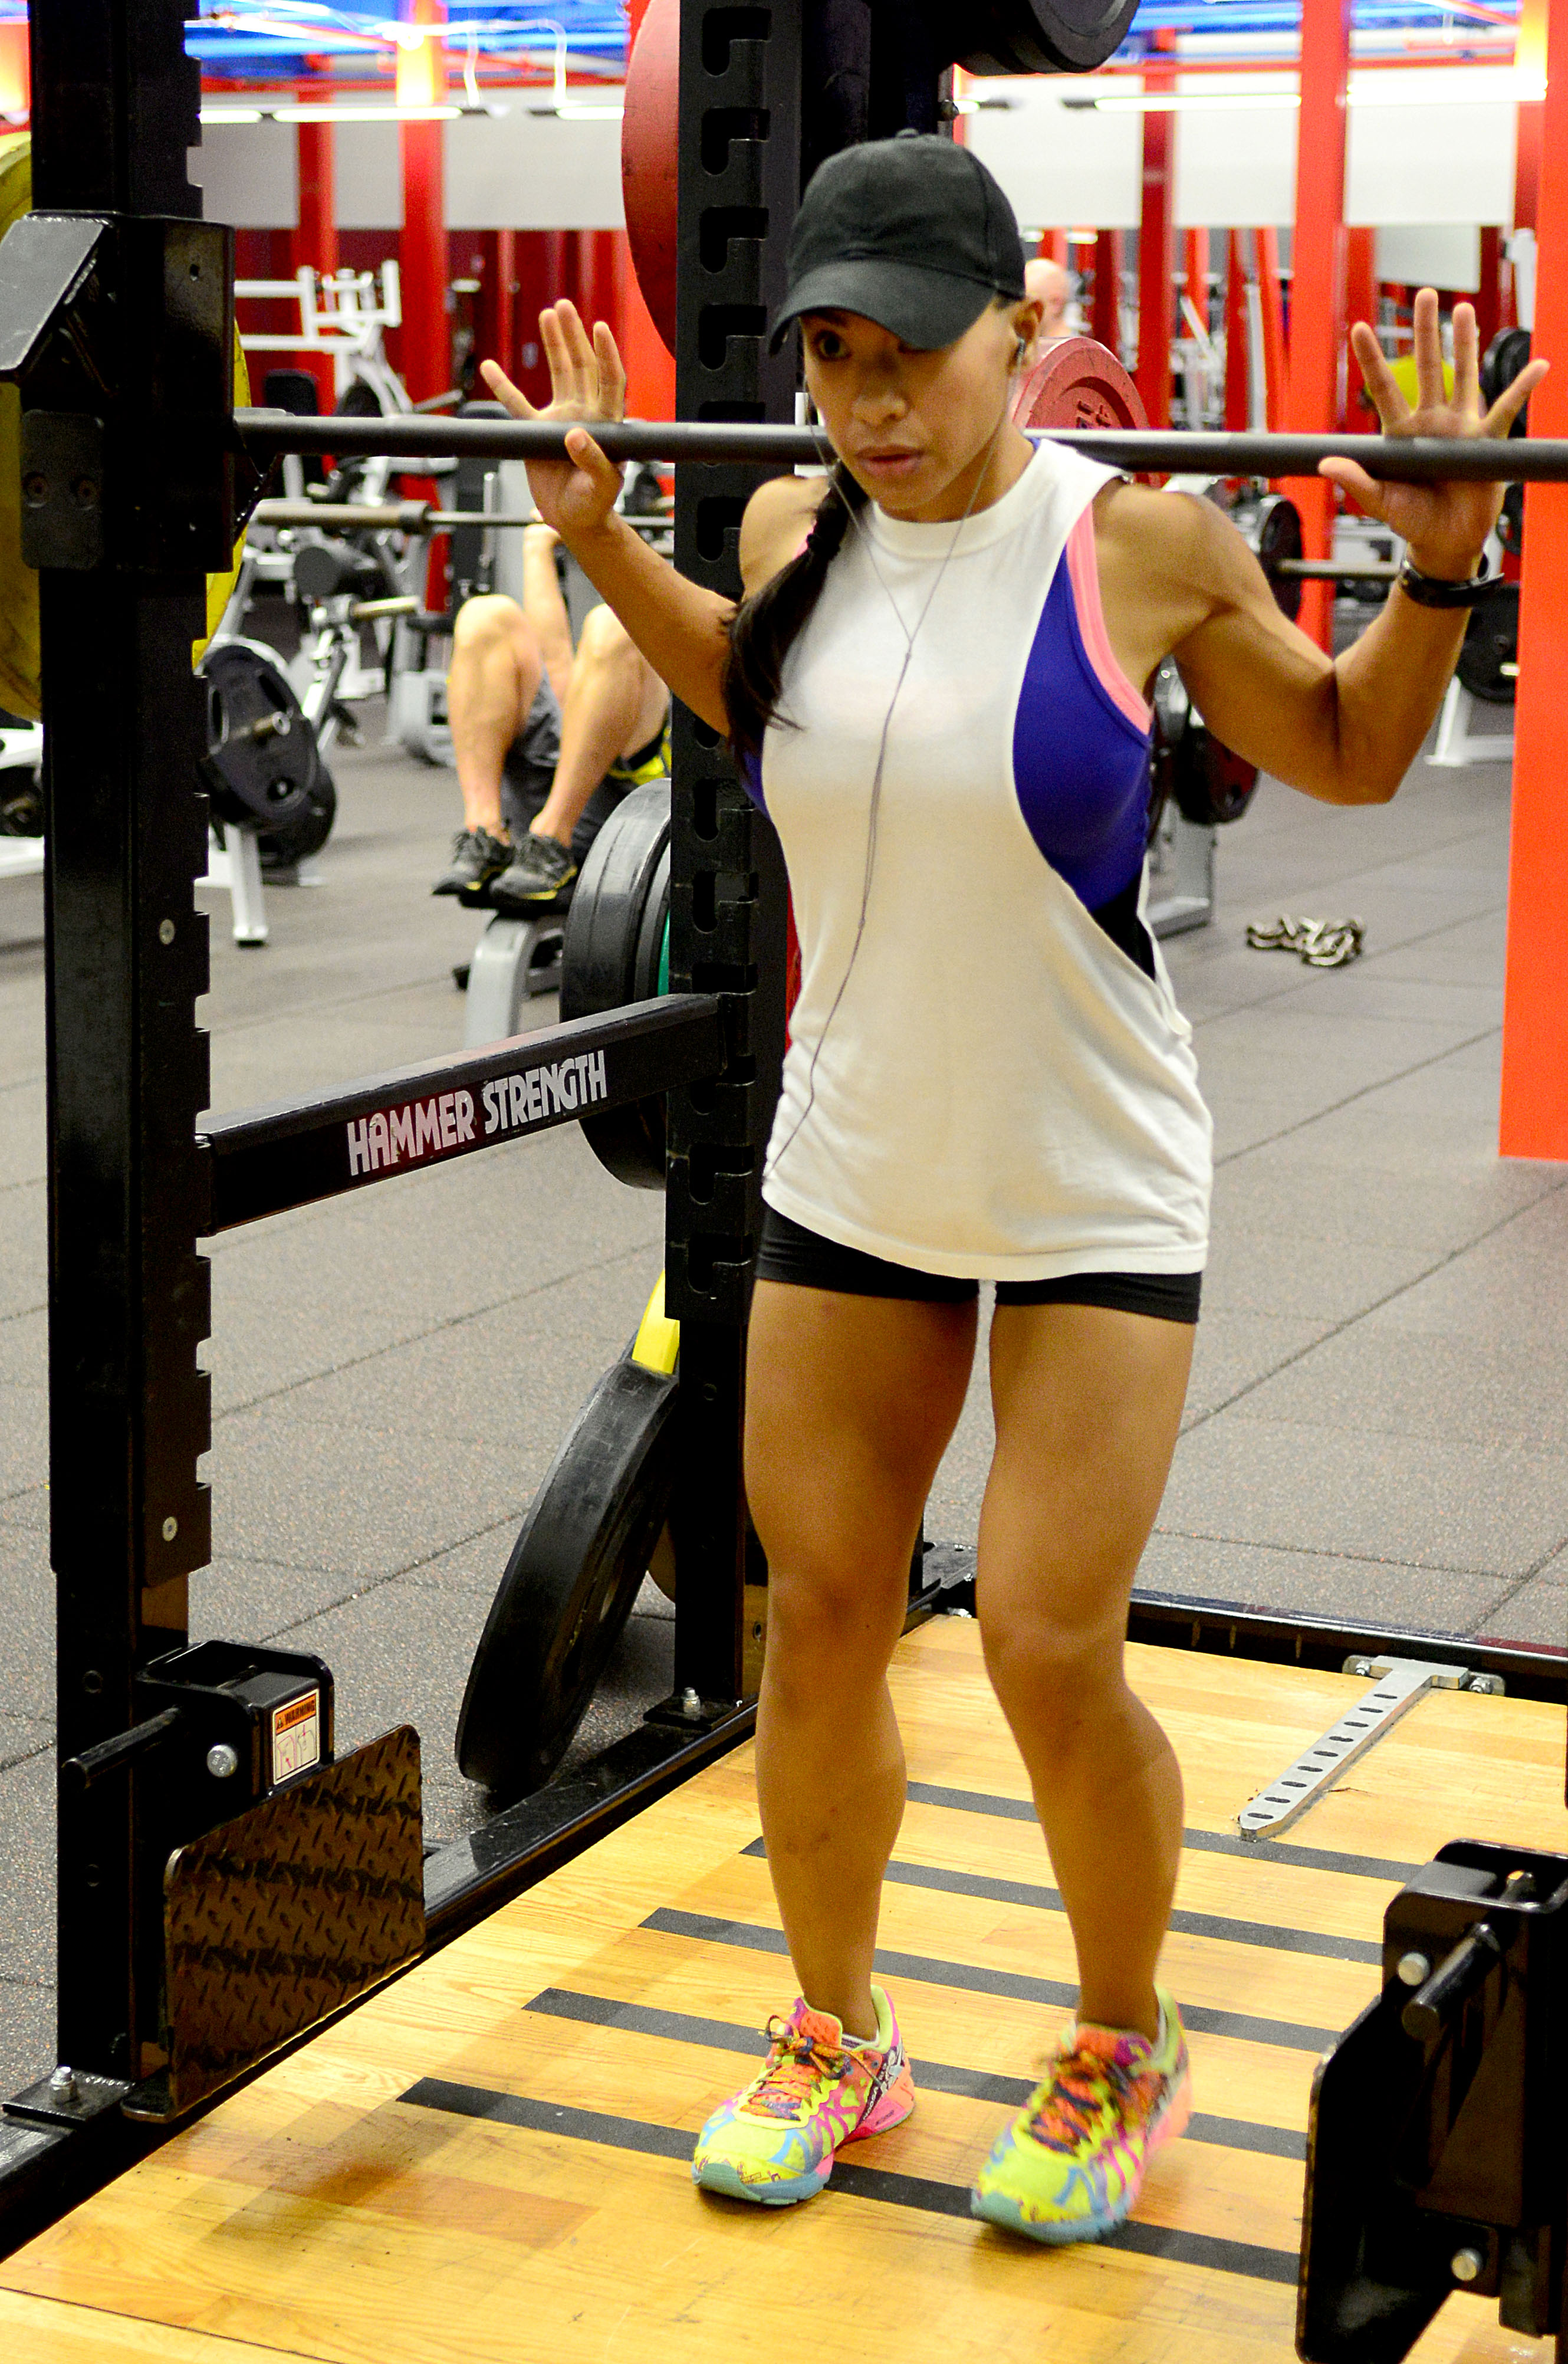 Macdill Airman Prepares For Fitness Competition Macdill Air Force